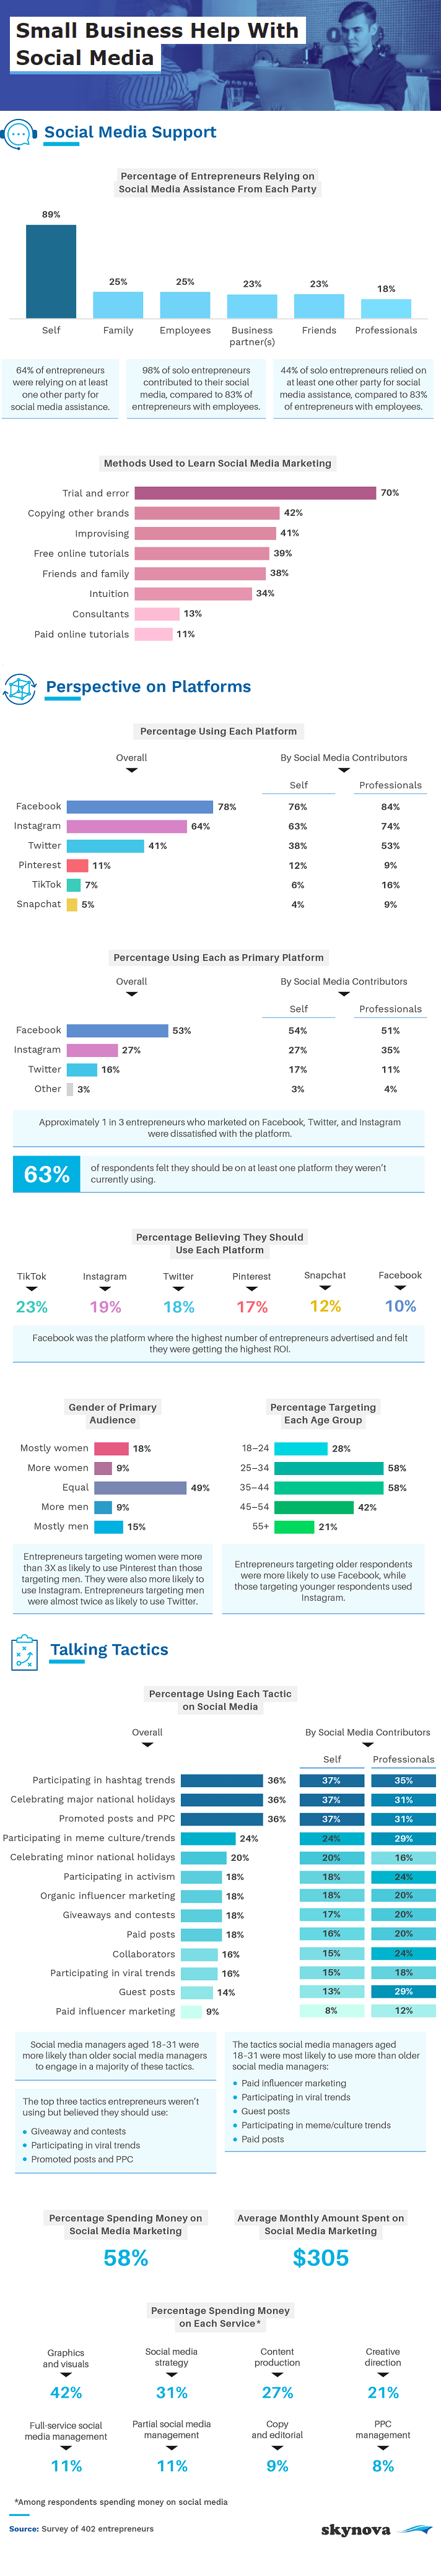 How SMBs are Tackling Social Media Marketing [Infographic]